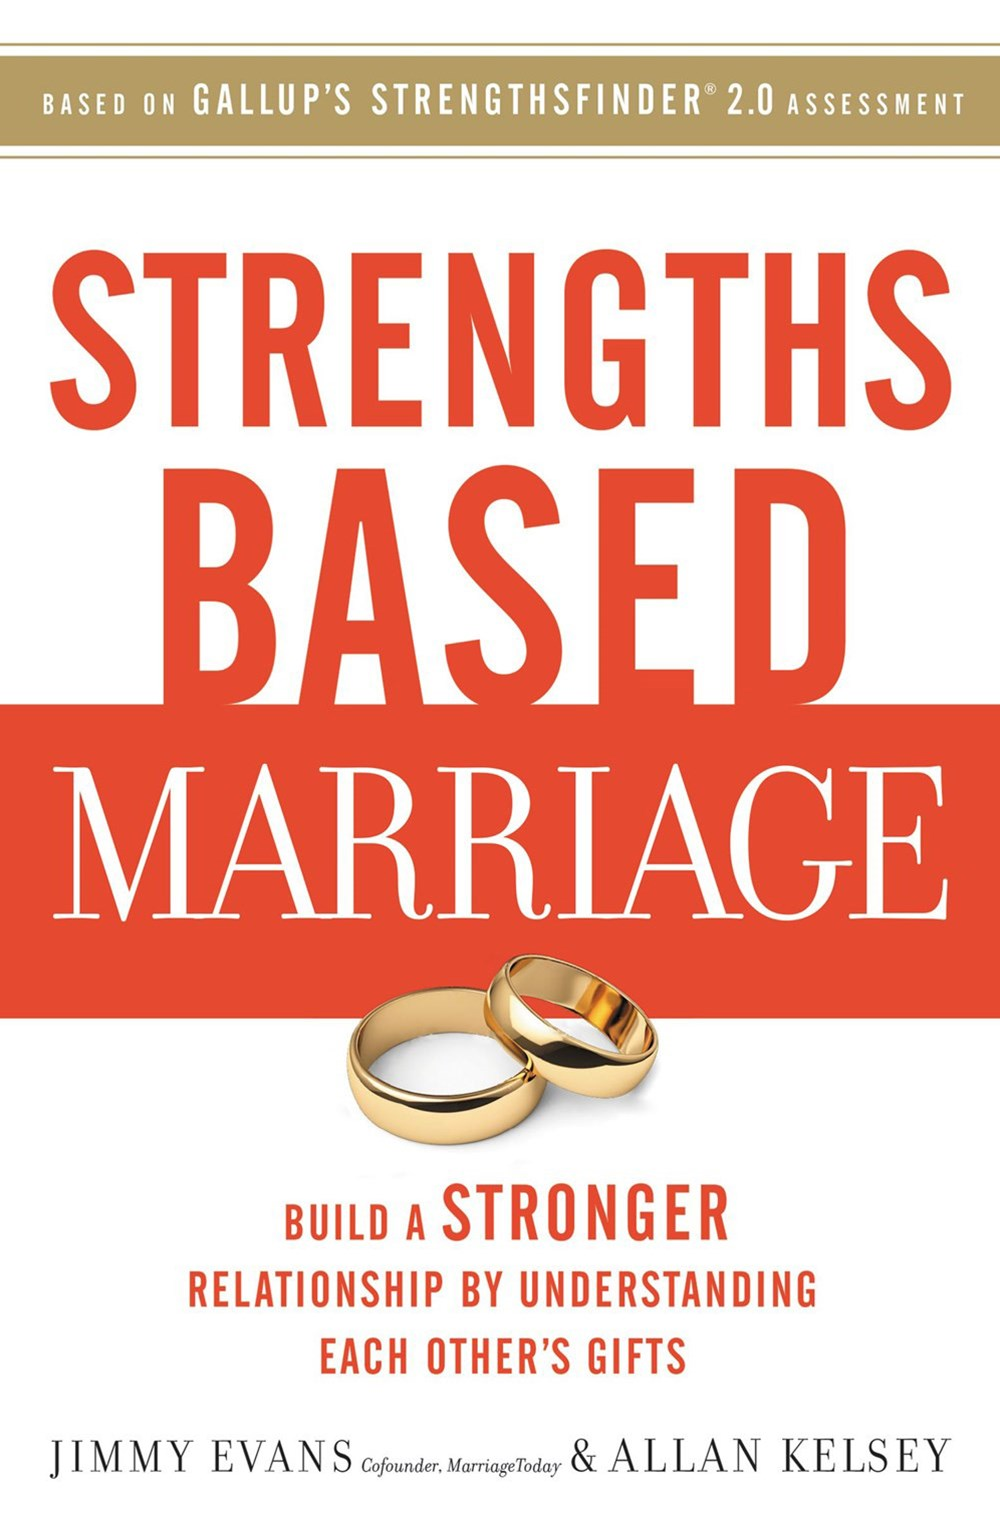 Strengths Based Marriage: Build A Stronger Relationship By UnderstandingEach Other's Gifts